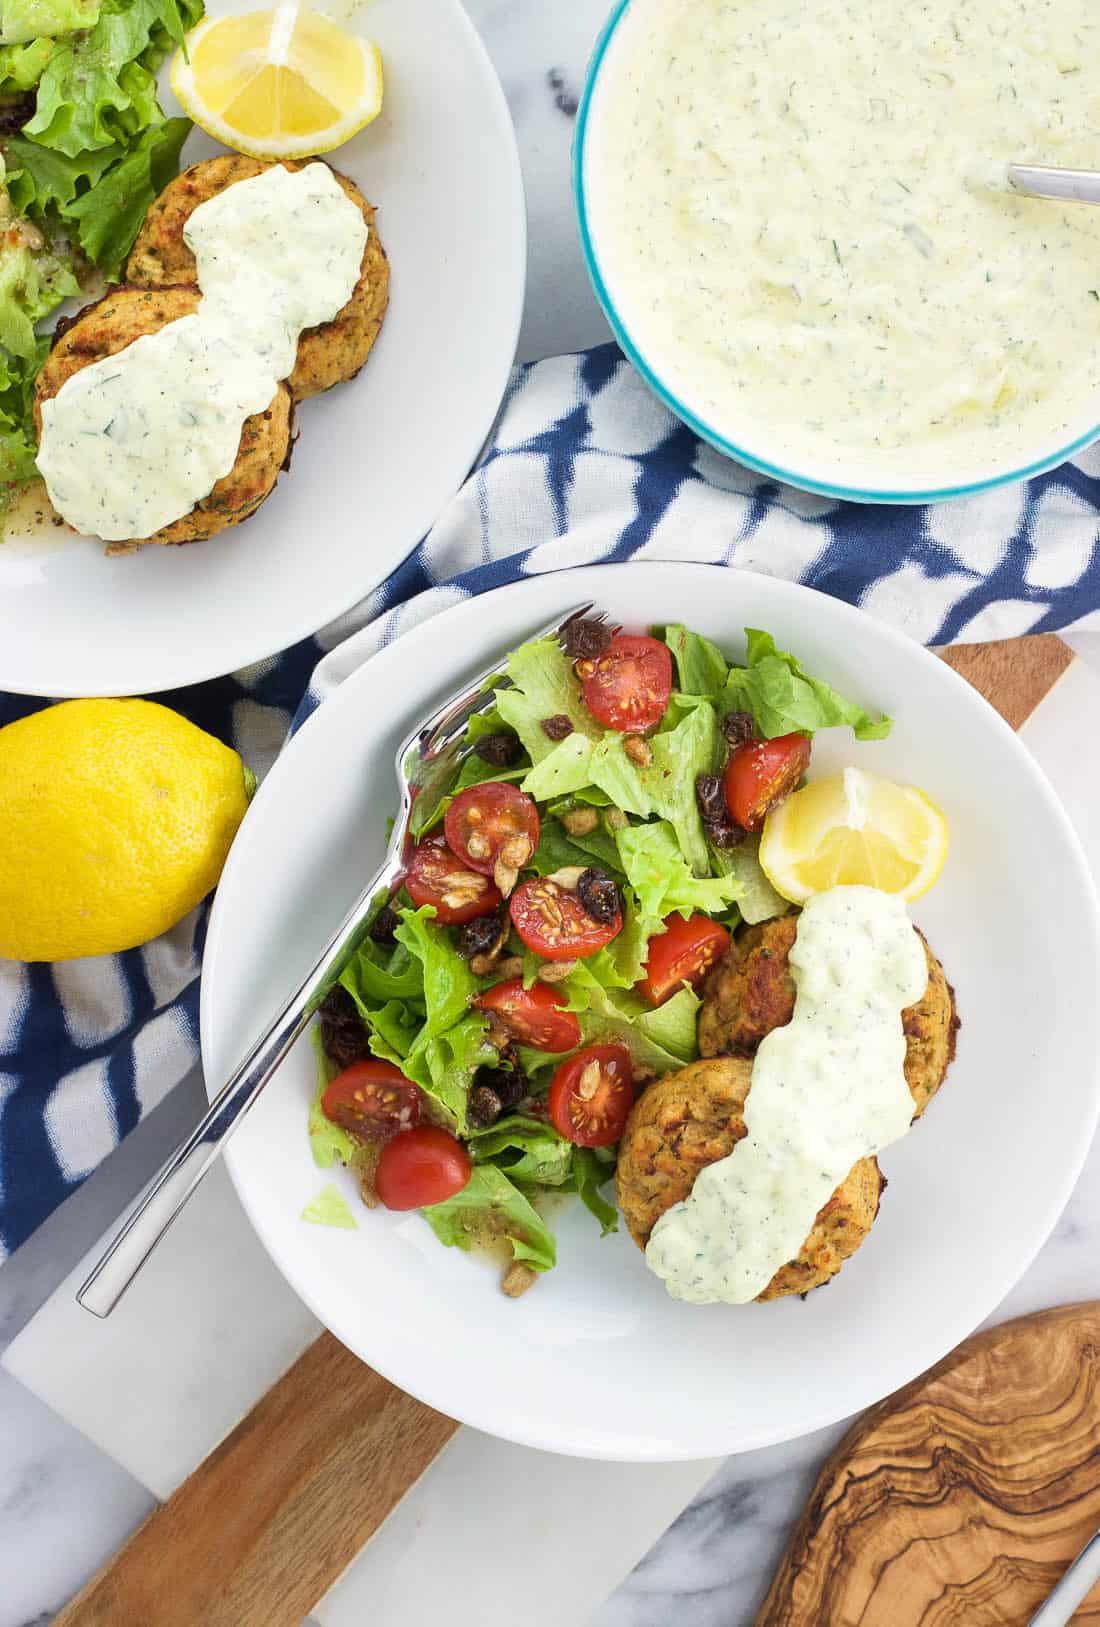 An overhead shot of a plate of two tuna cakes, a drizzle of tartar sauce, a lemon wedge, and a side salad